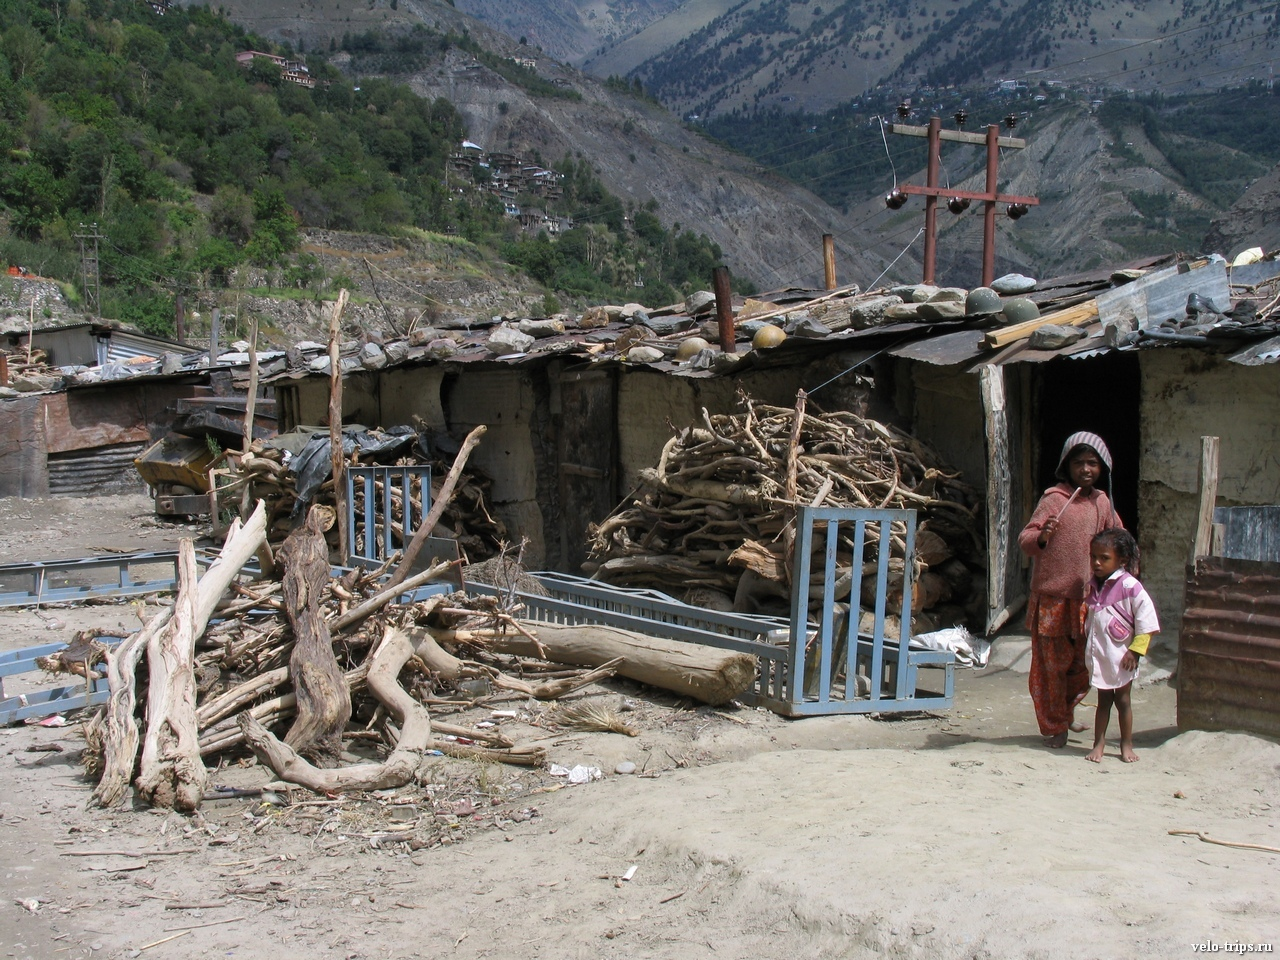 Himalaya village huts and children